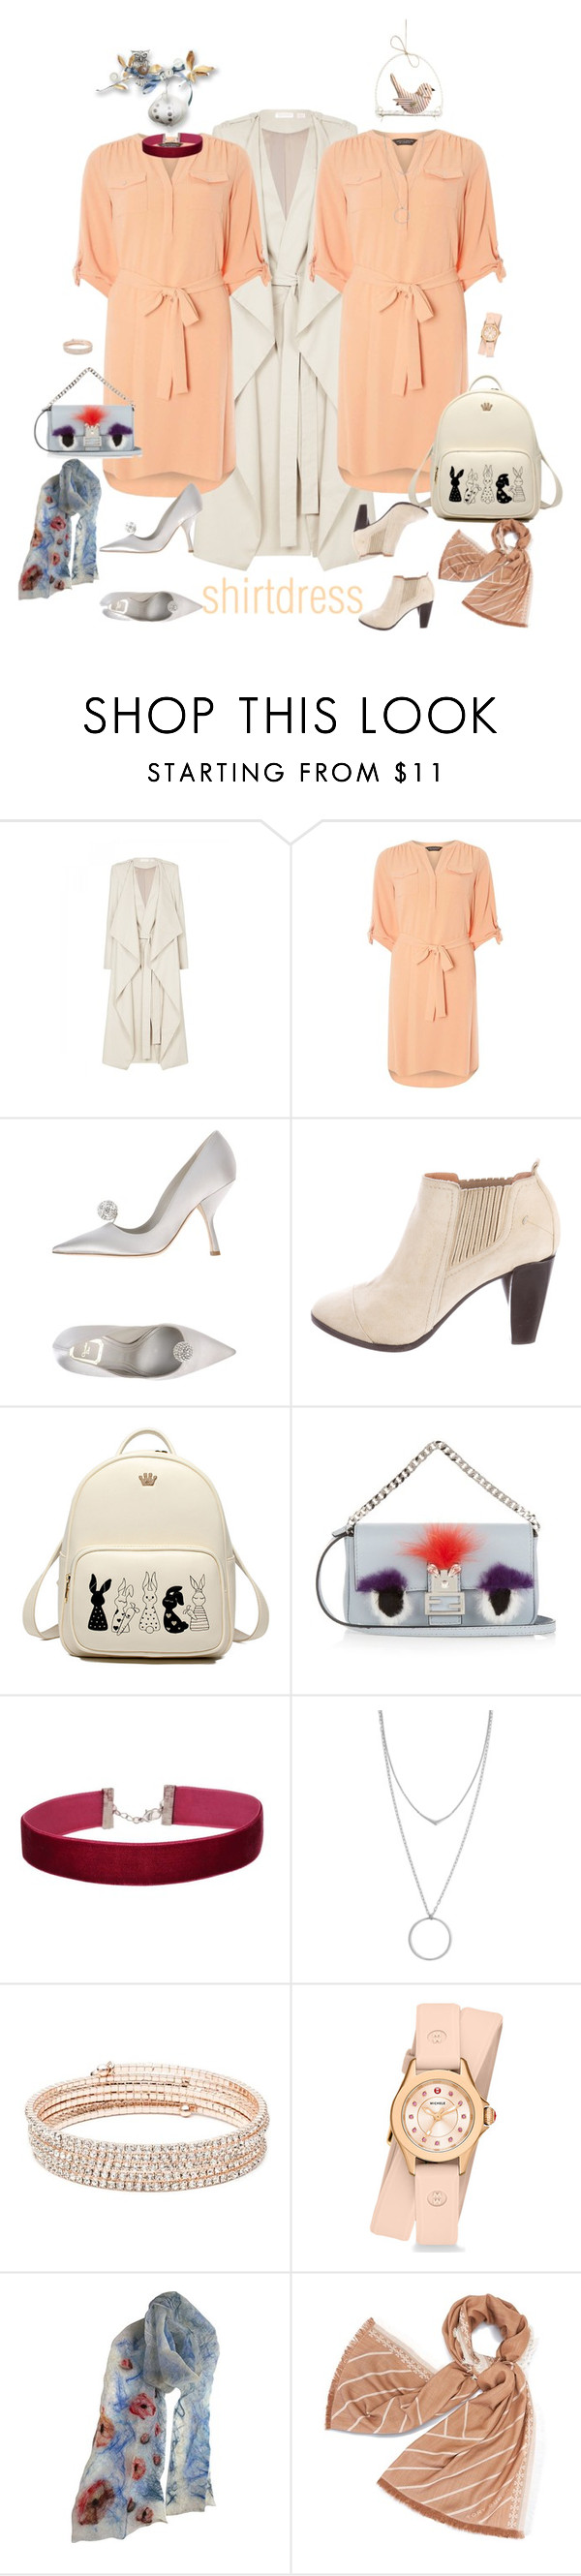 """""""DAY & EVENING"""" by yesitsme123 ❤ liked on Polyvore featuring sass & bide, Dorothy Perkins, Christian Dior, COSTUME NATIONAL, Fendi, Miss Selfridge, Botkier, Anne Klein, Michele and Tory Burch"""